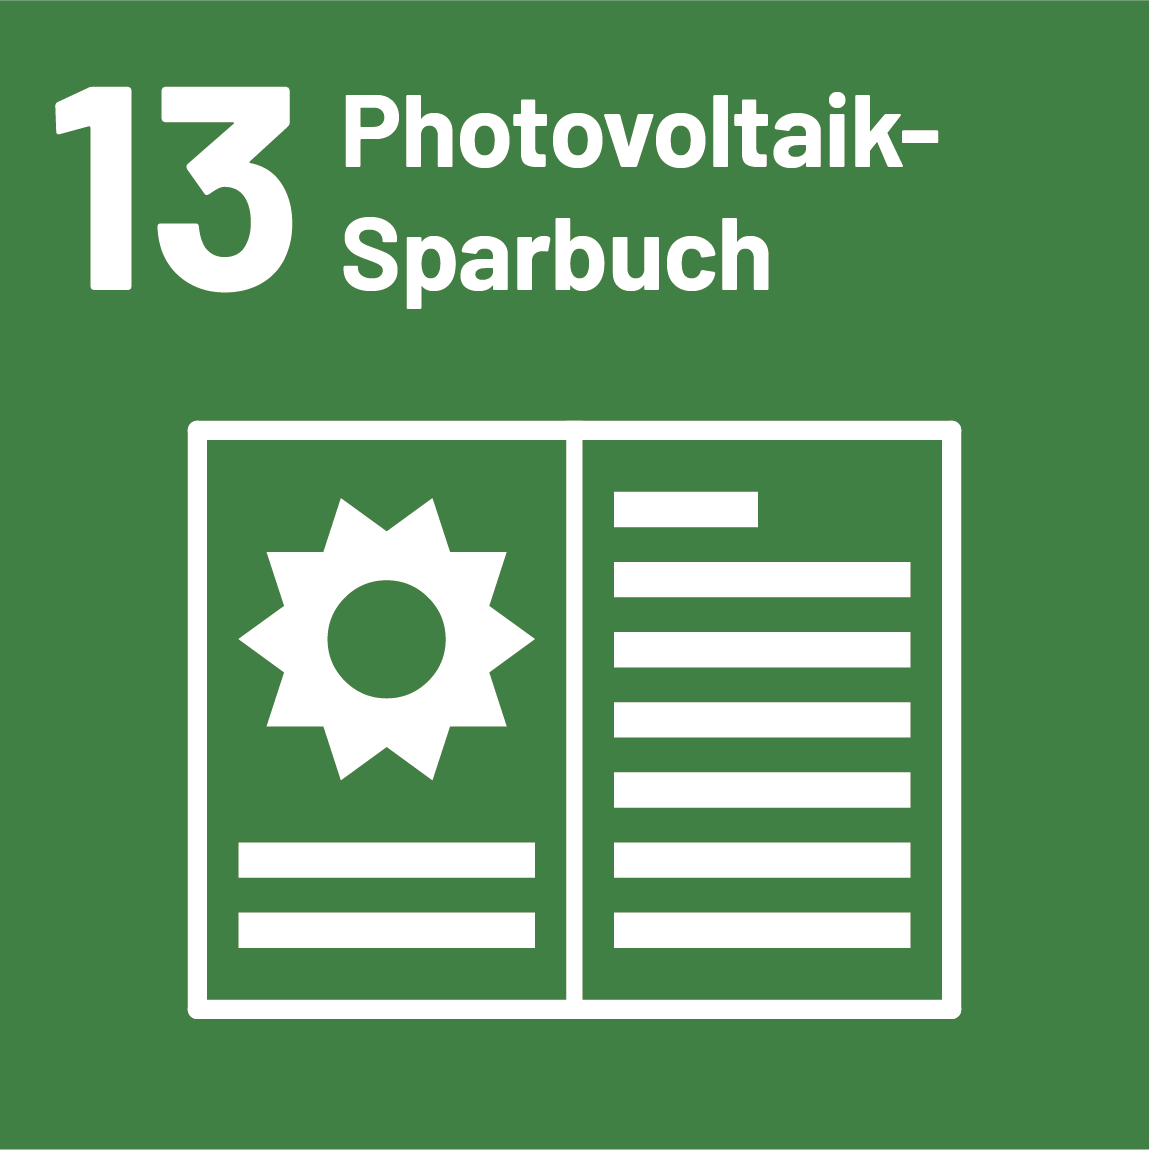 photovoltaik-sparbuch.png